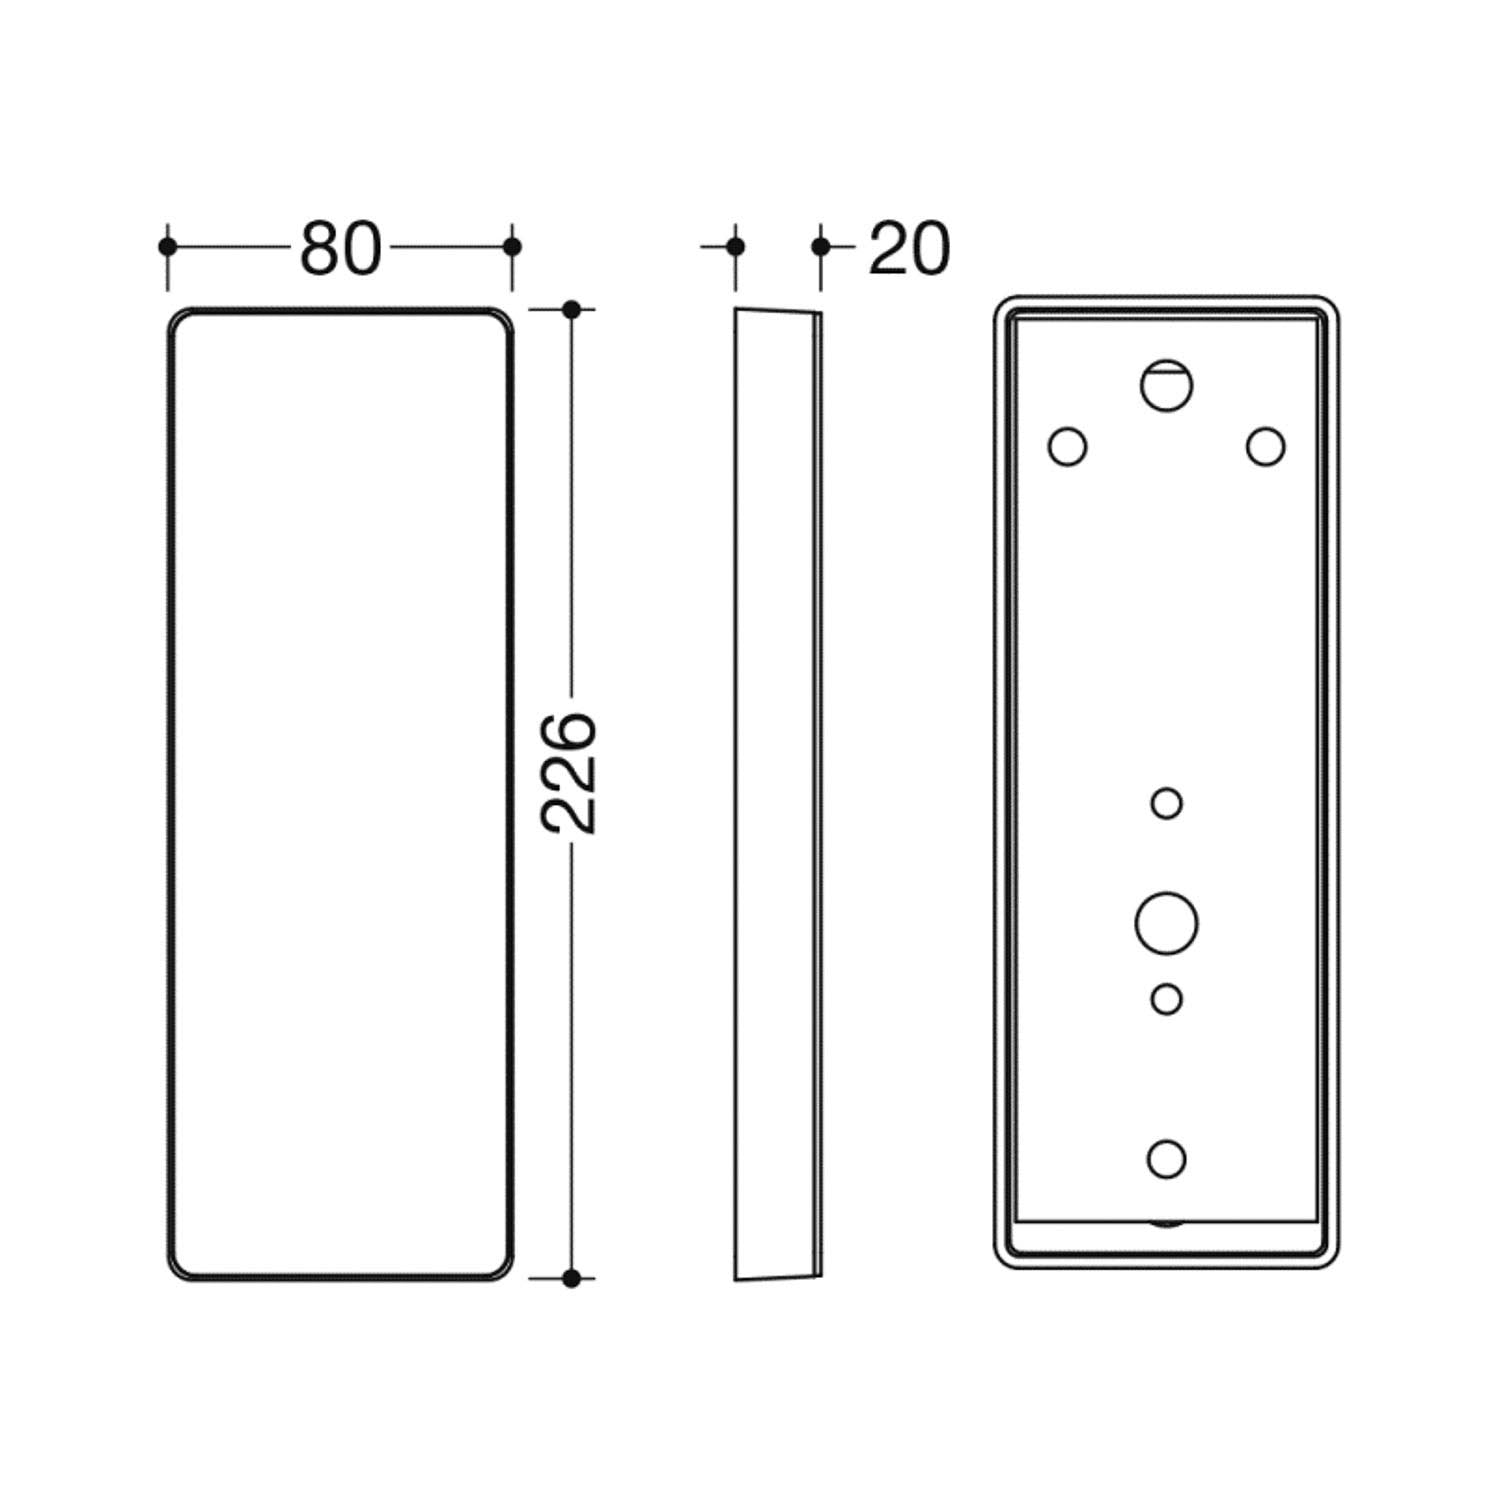 Freestyle Removable Hinged Grab Rail Mounting Plate and Cover with a satin steel finish dimensional drawing